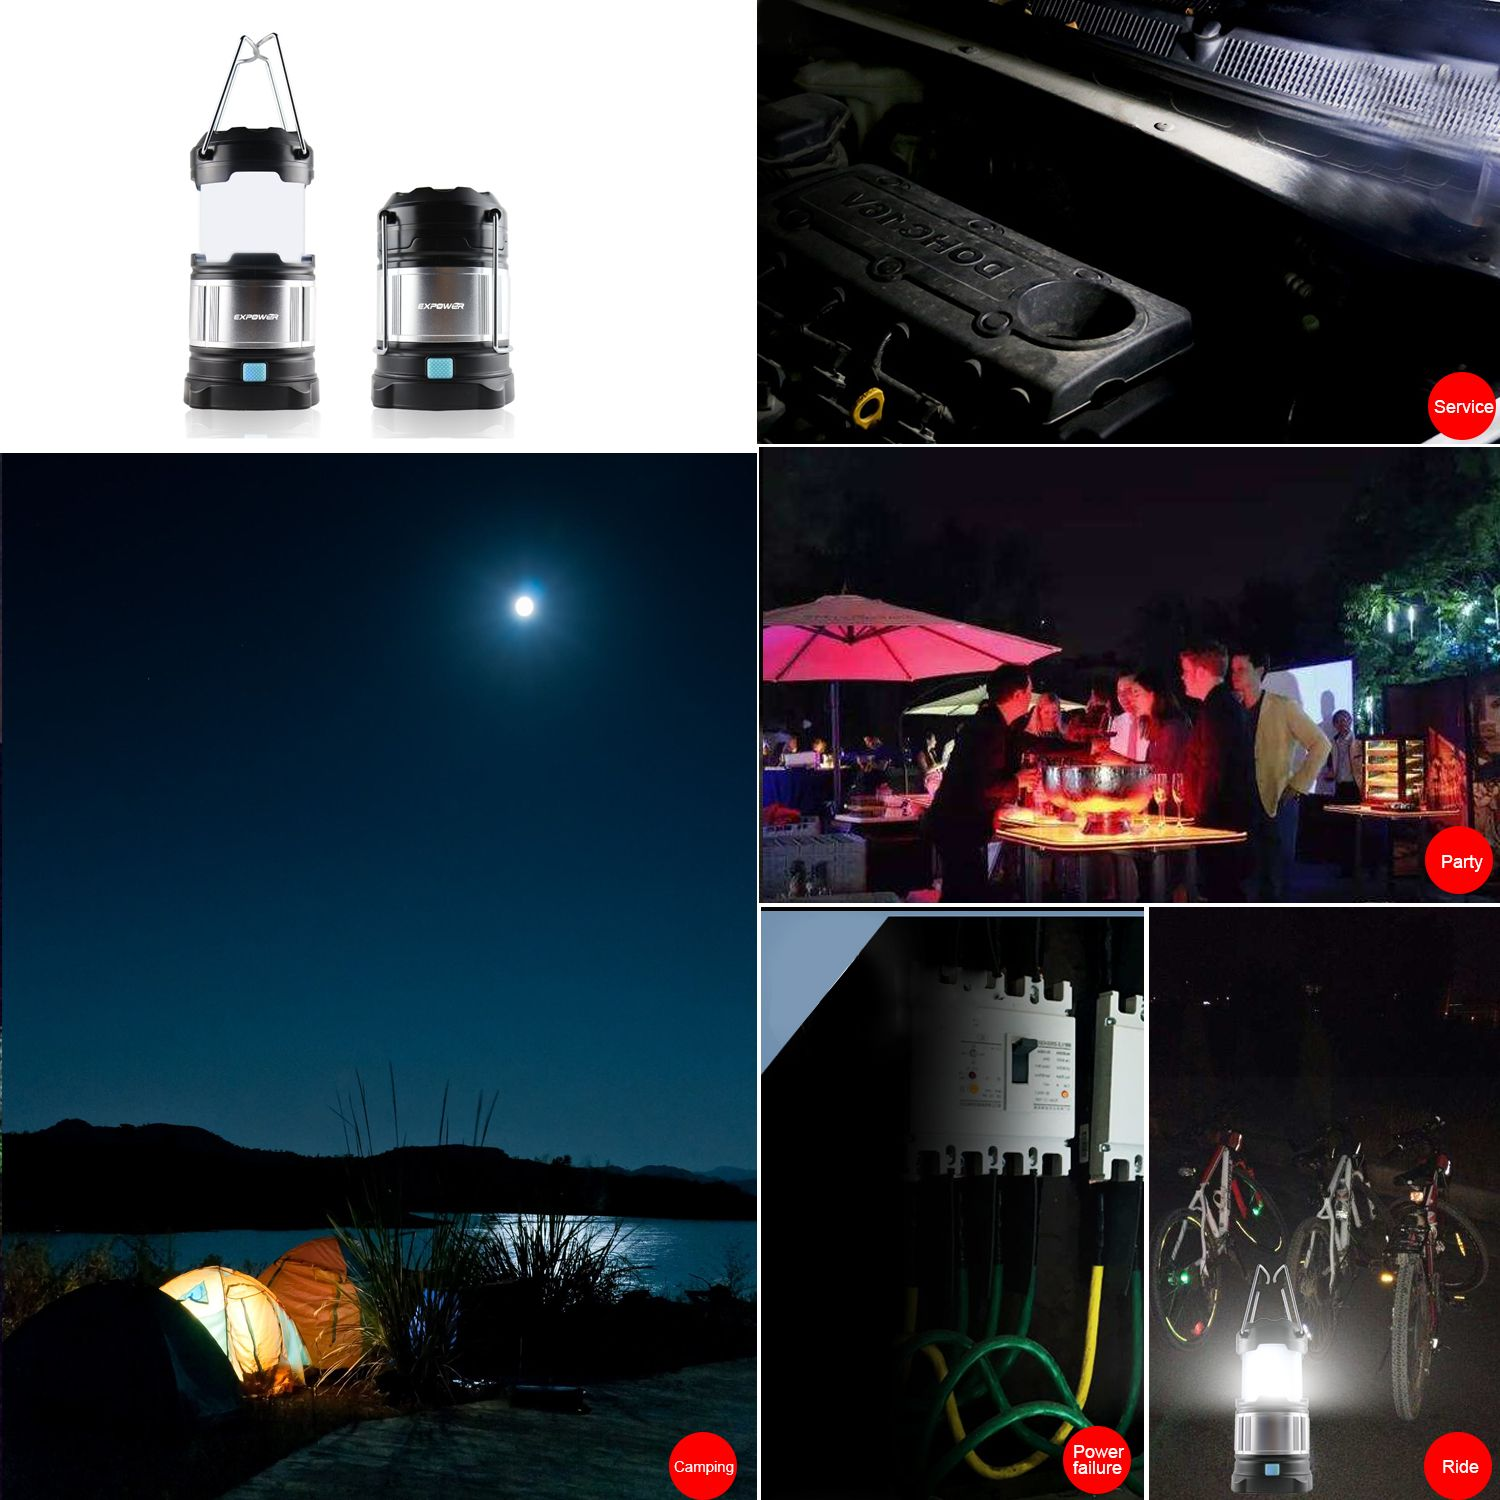 Gartenlaterne Led Expower Ipx5 Wasserdicht Tragbare Led Camping Laterne Helle